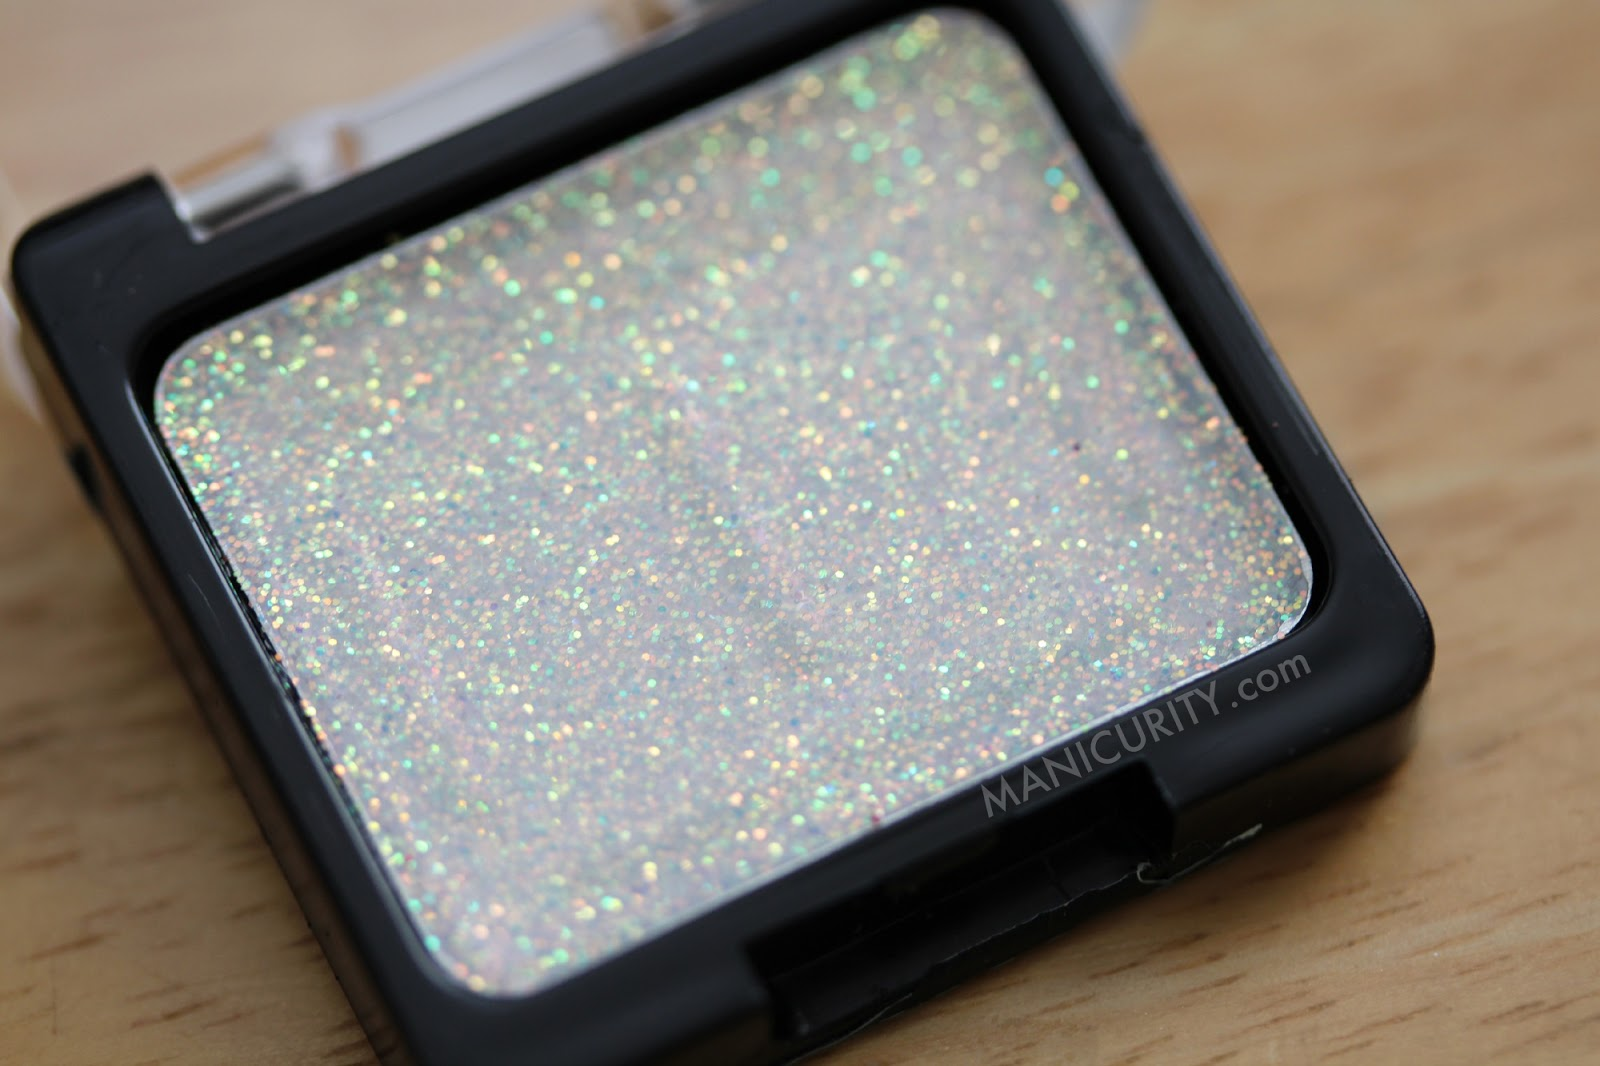 Wet n Wild Color Icon Glitter Single Bleached - swatches, review, wear test | Manicurity.com